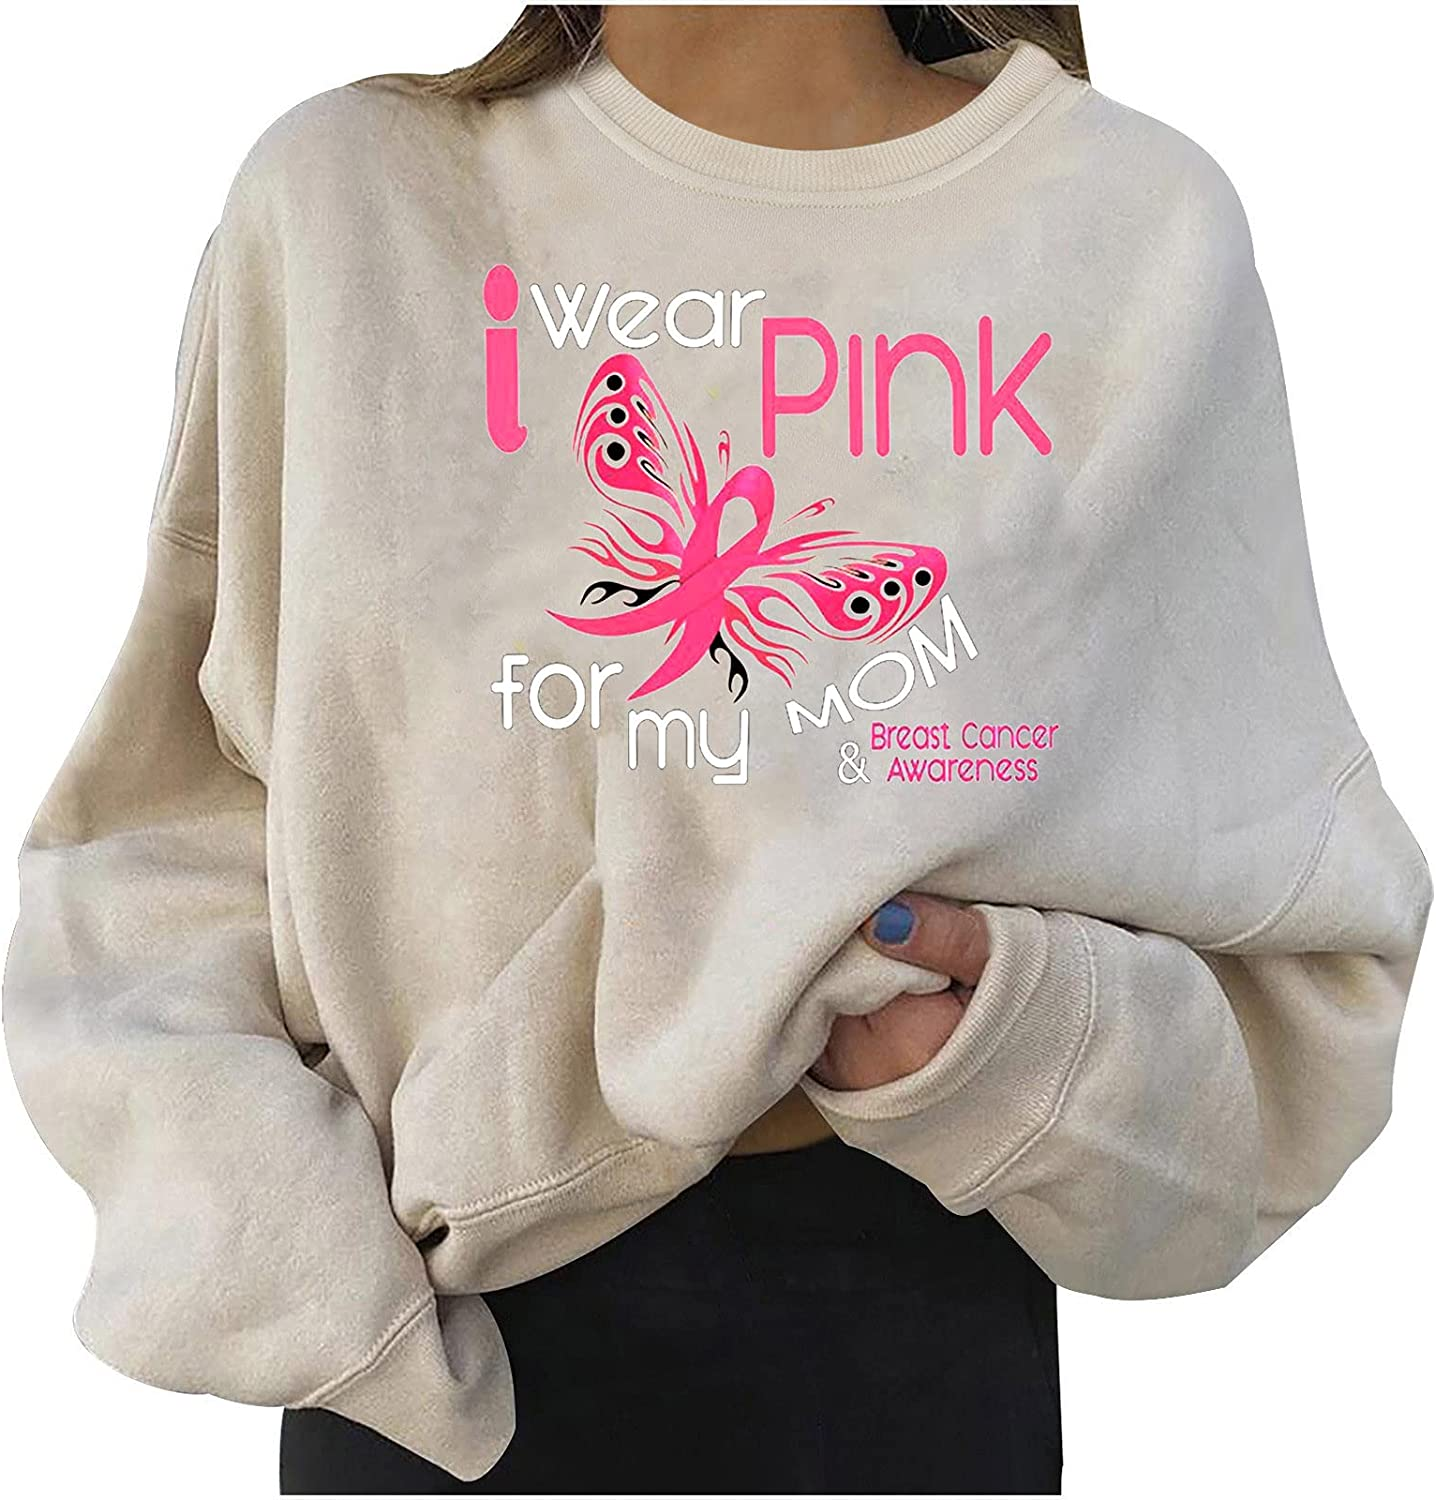 Winter Sweaters for Womens Round Neck Pullovers Sweatshirt Fashion Printed Blouse Tops Long Sleeve Hoodie